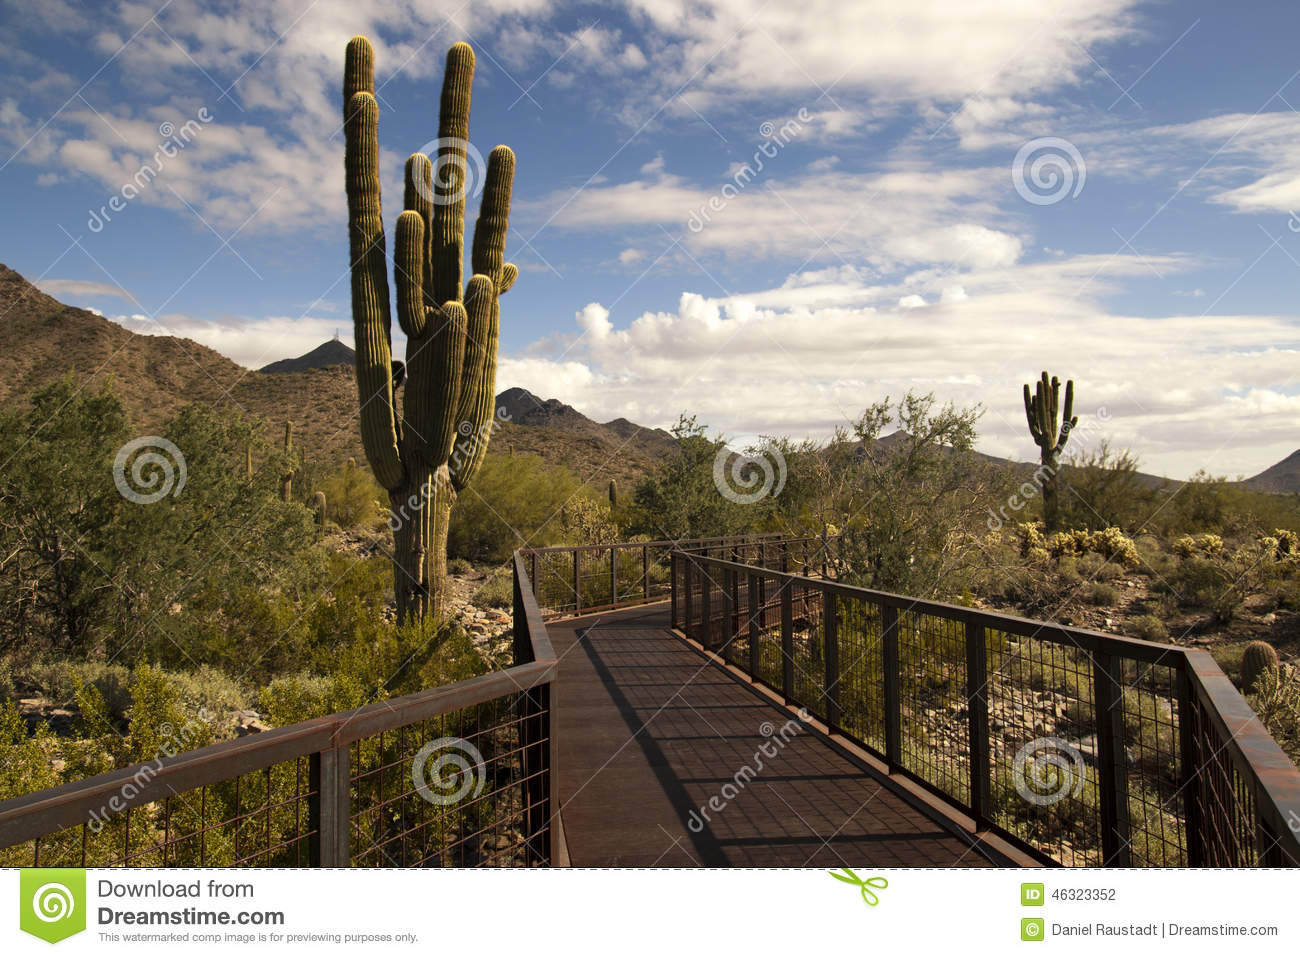 Desert cactus and mountains